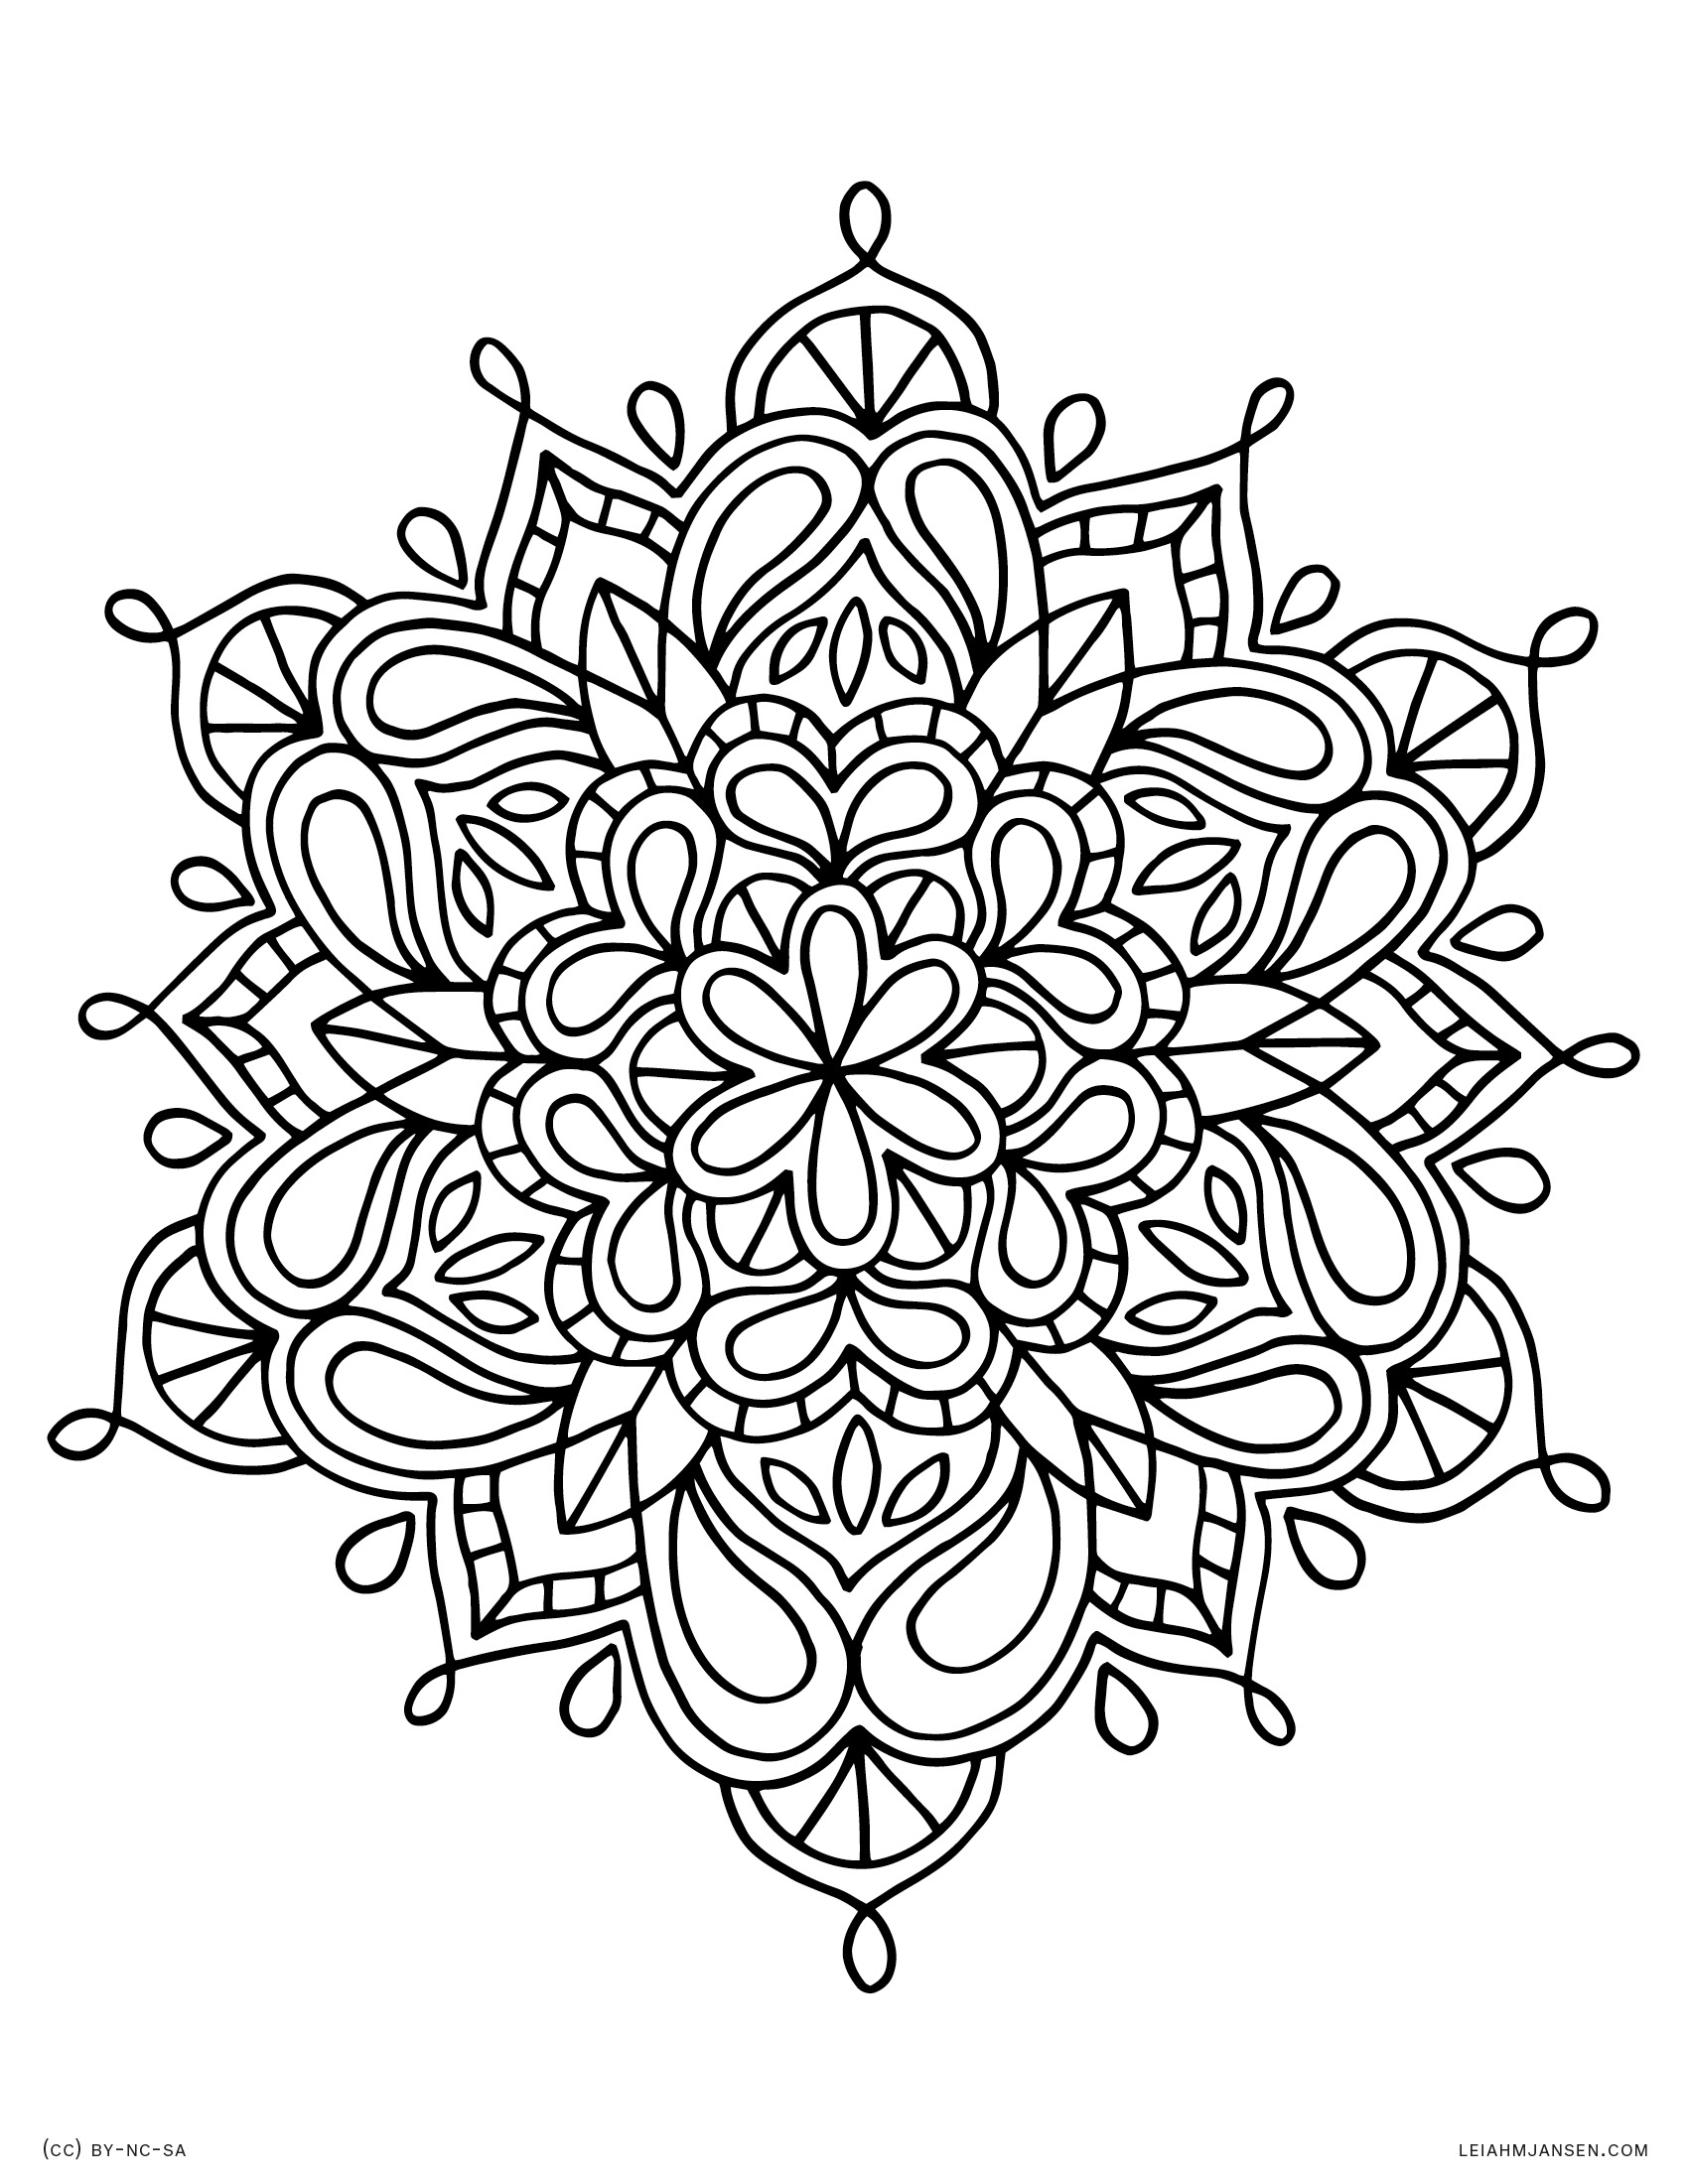 blank coloring sheets blank drawing for kids at getdrawings free download sheets coloring blank